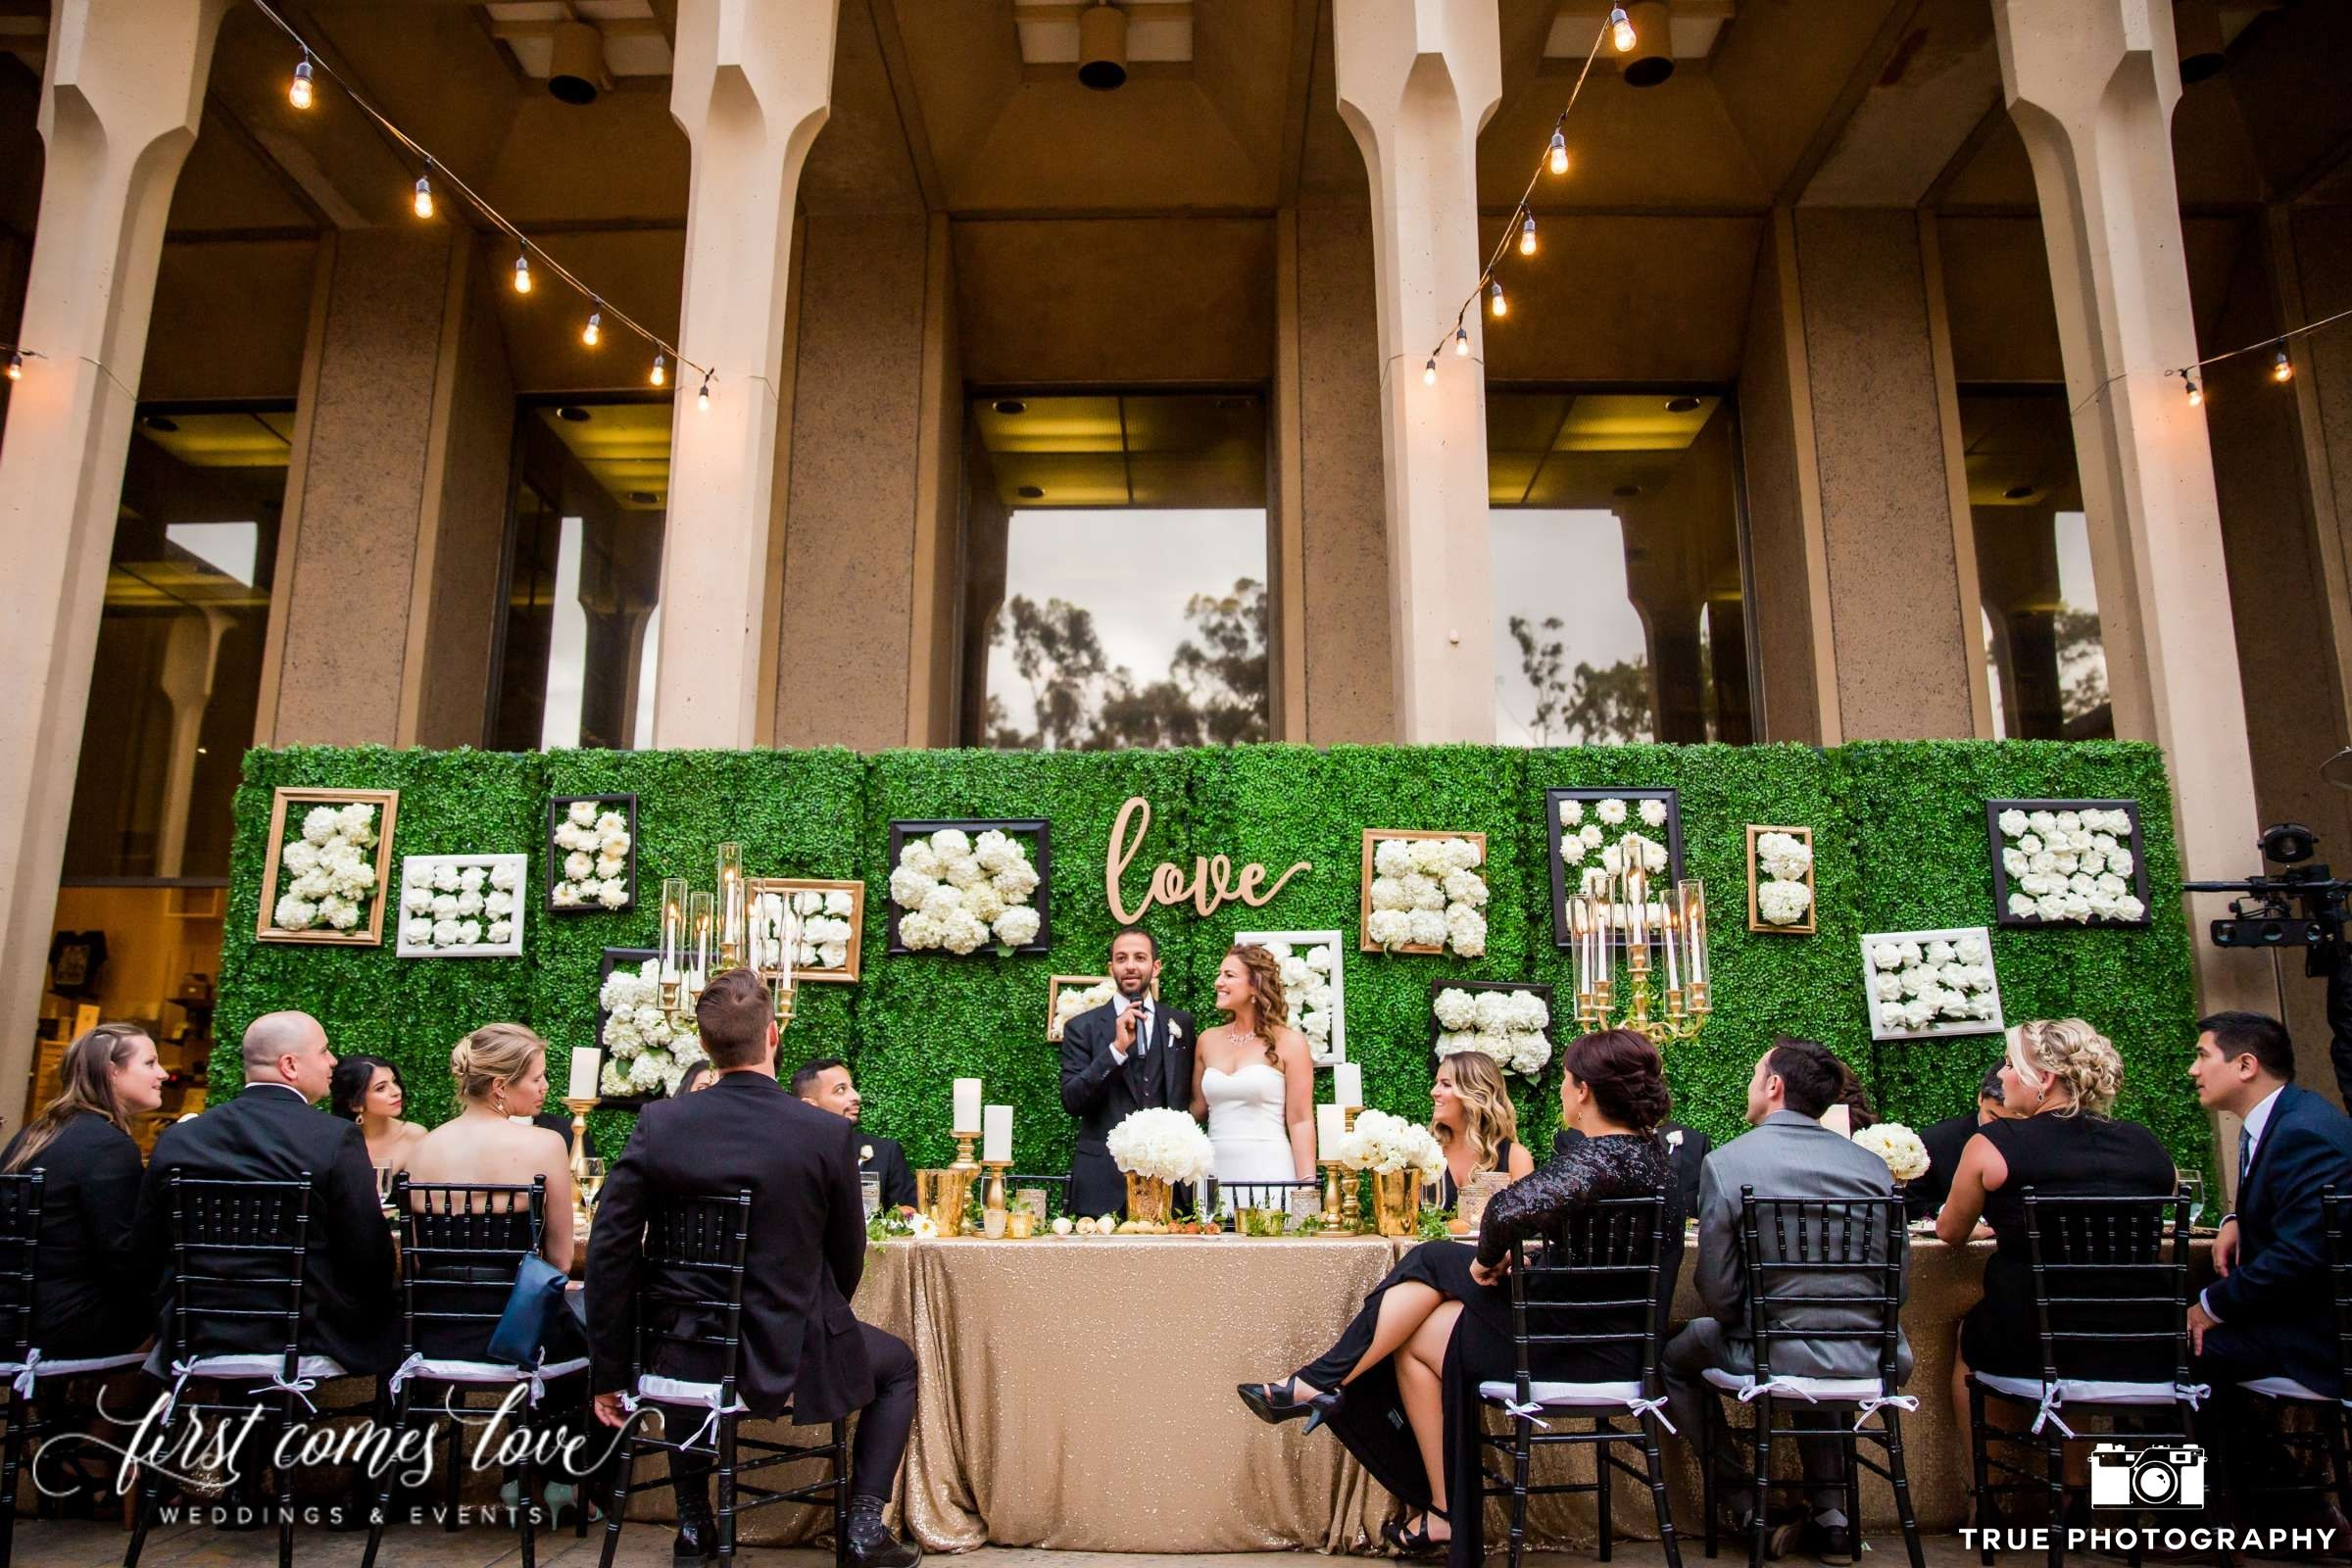 Luxury wedding decoration ideas  Beautiful White and Gold Decor with Vibrant Green Backdrop for a